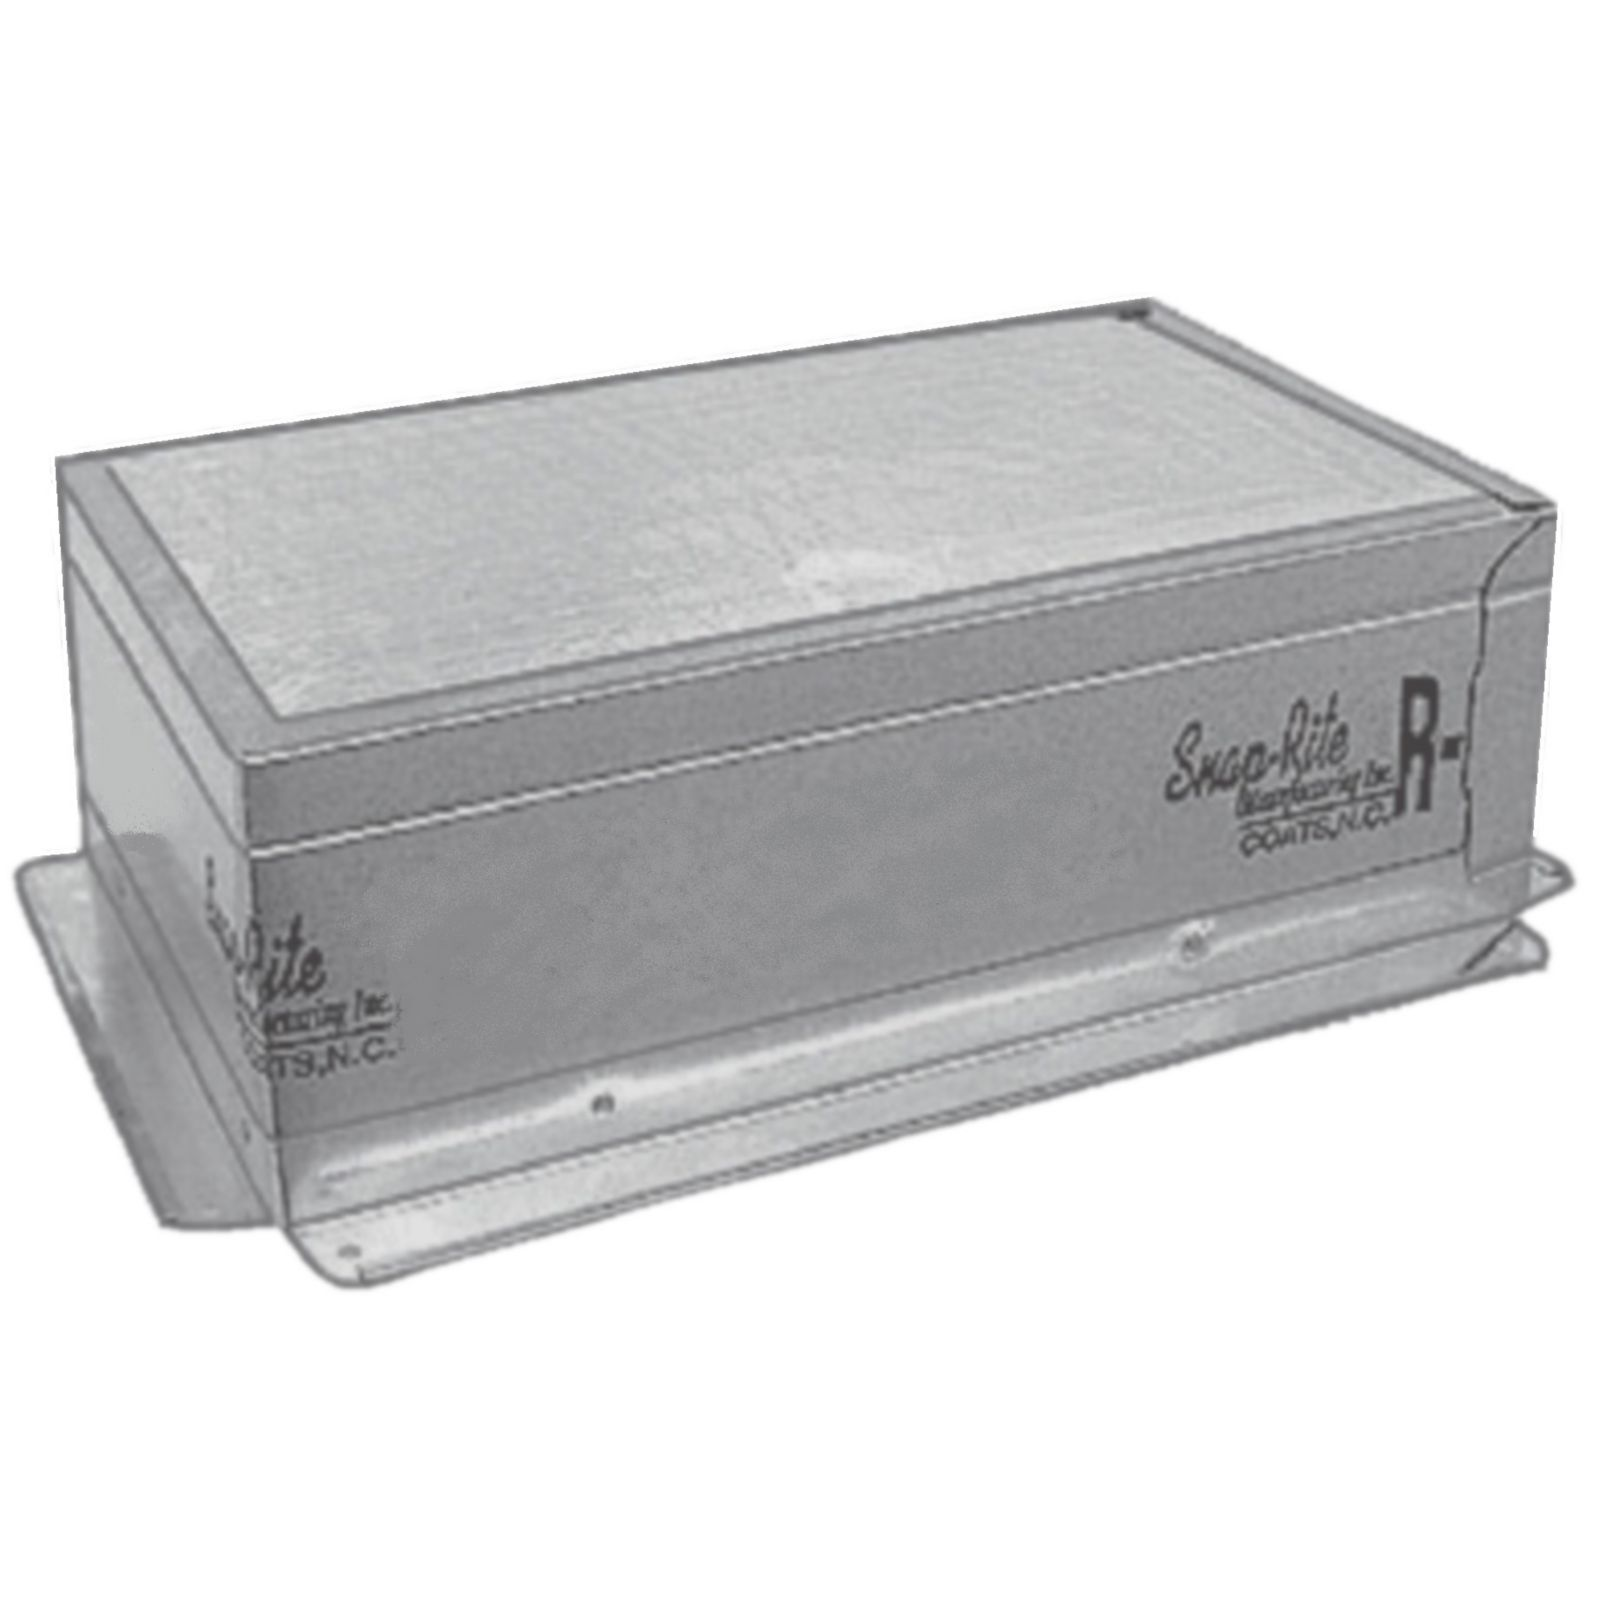 "Snap-Rite 08X08-3800F - Foil Top Insulated Register Box With Flange, 08"" x 08"" - R6"